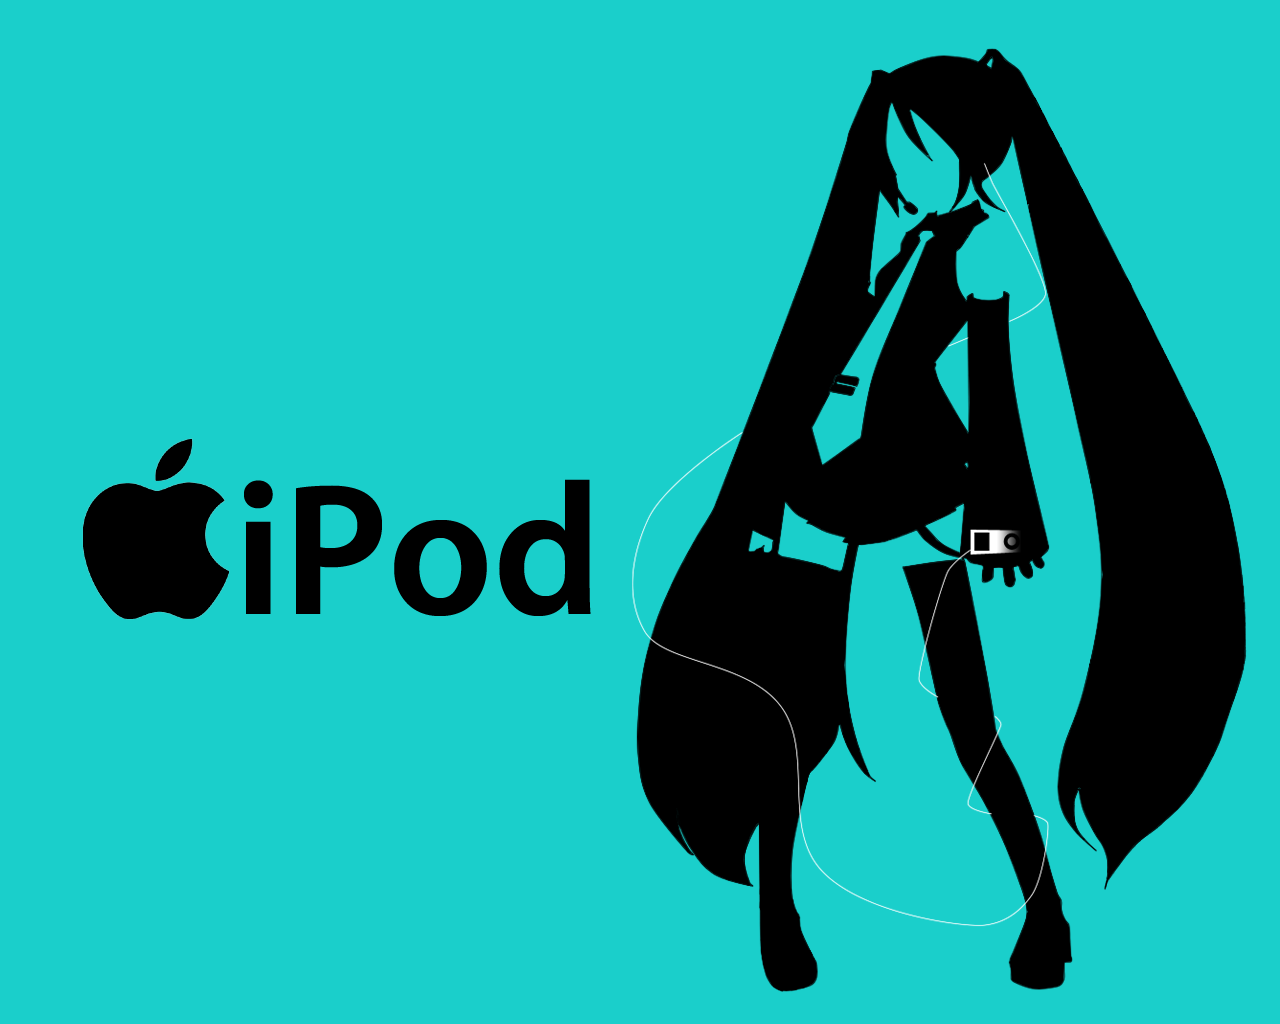 Anime Ipod Wallpapers Cake Ideas and Designs